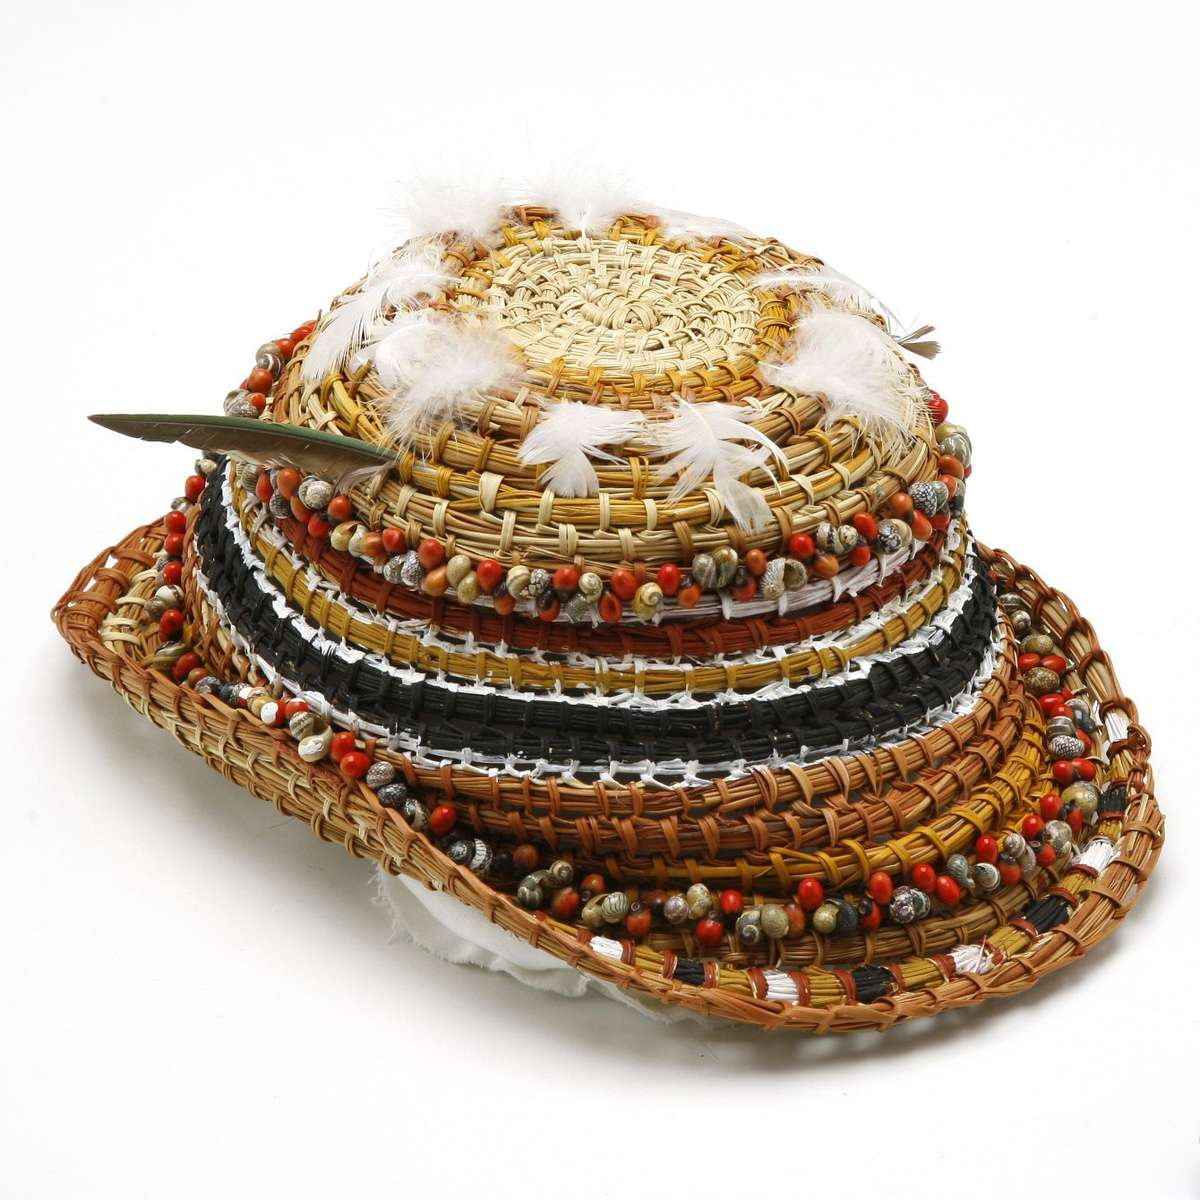 Hat woven from natural fibres with strings of small shells, seeds and feathers with painted decoration. ANMM Collection 00040541.